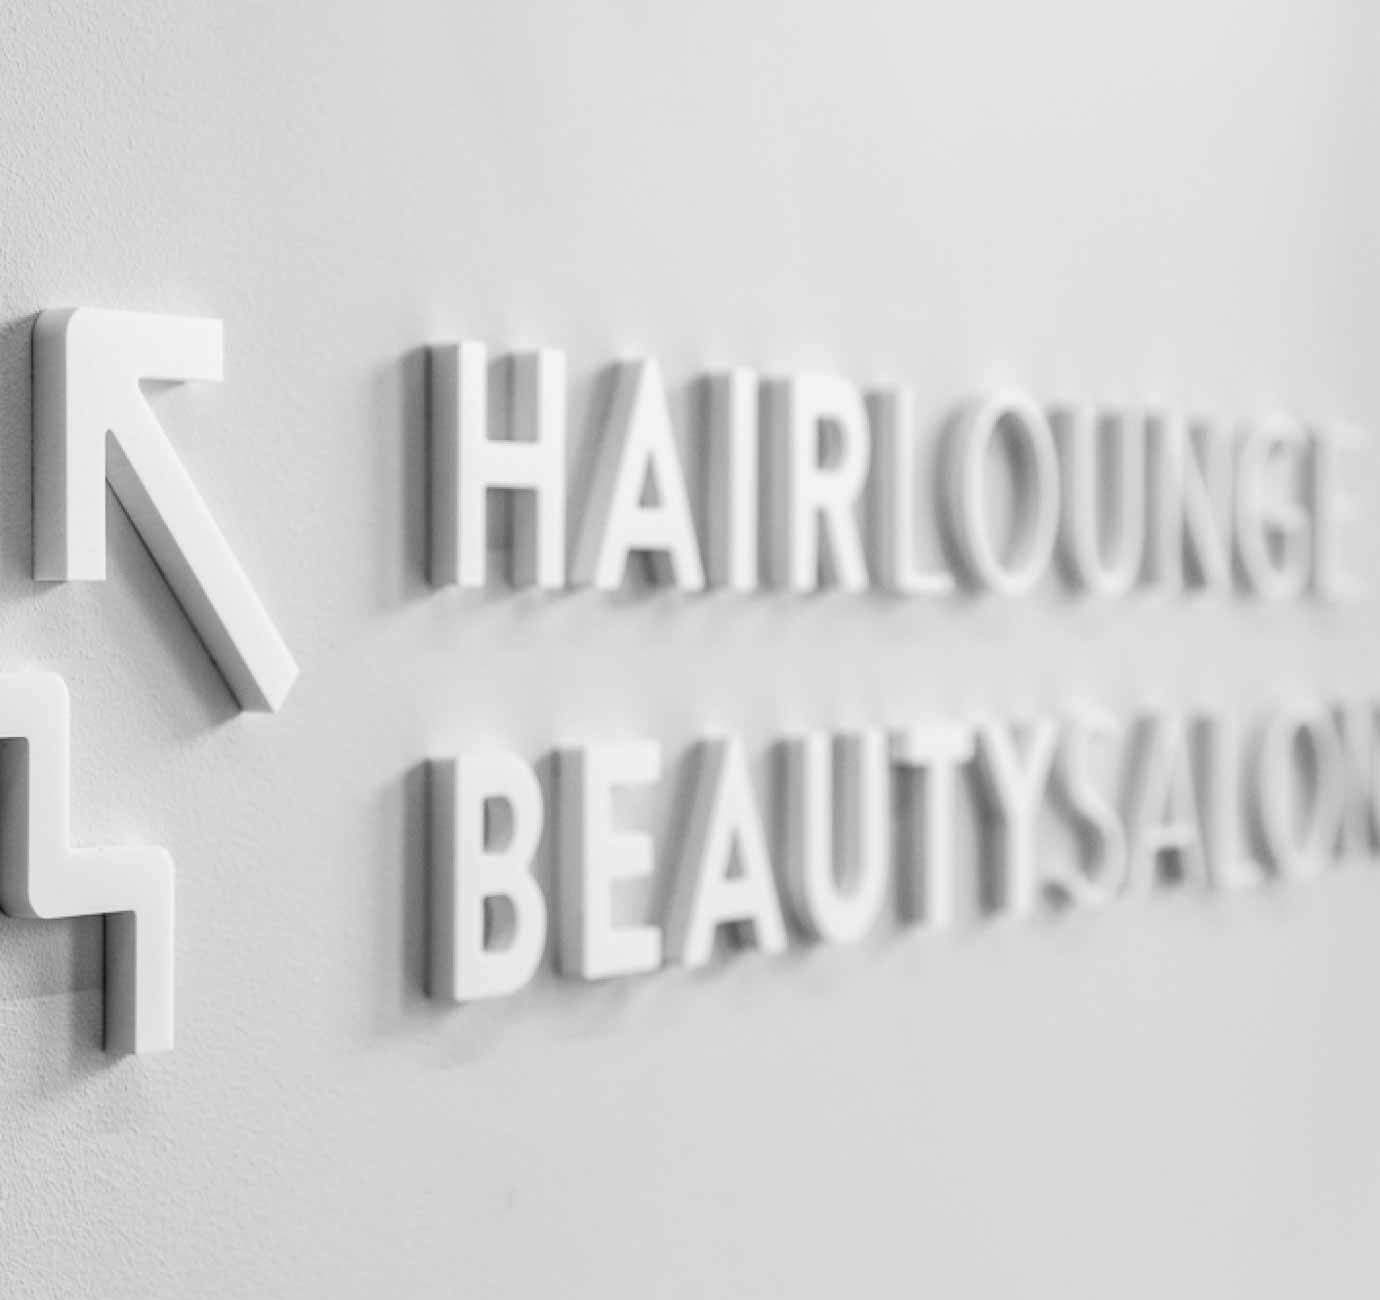 Exclusieve Sessies In De Hairlounge Vd Horst Hairstylers